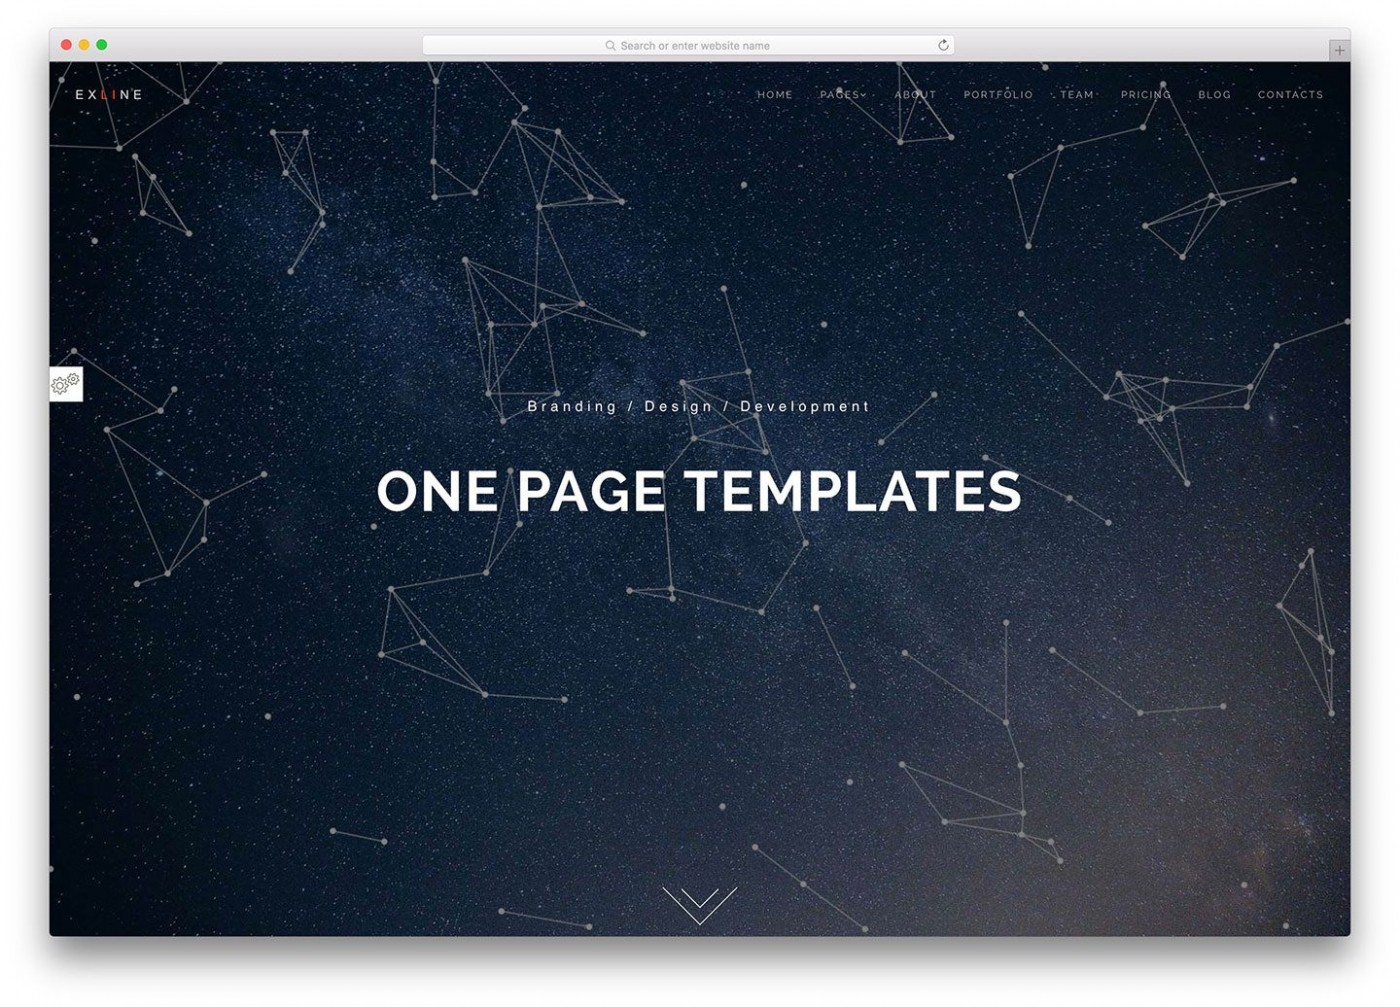 003 Outstanding One Page Website Template Html5 Responsive Free Download Concept 1400